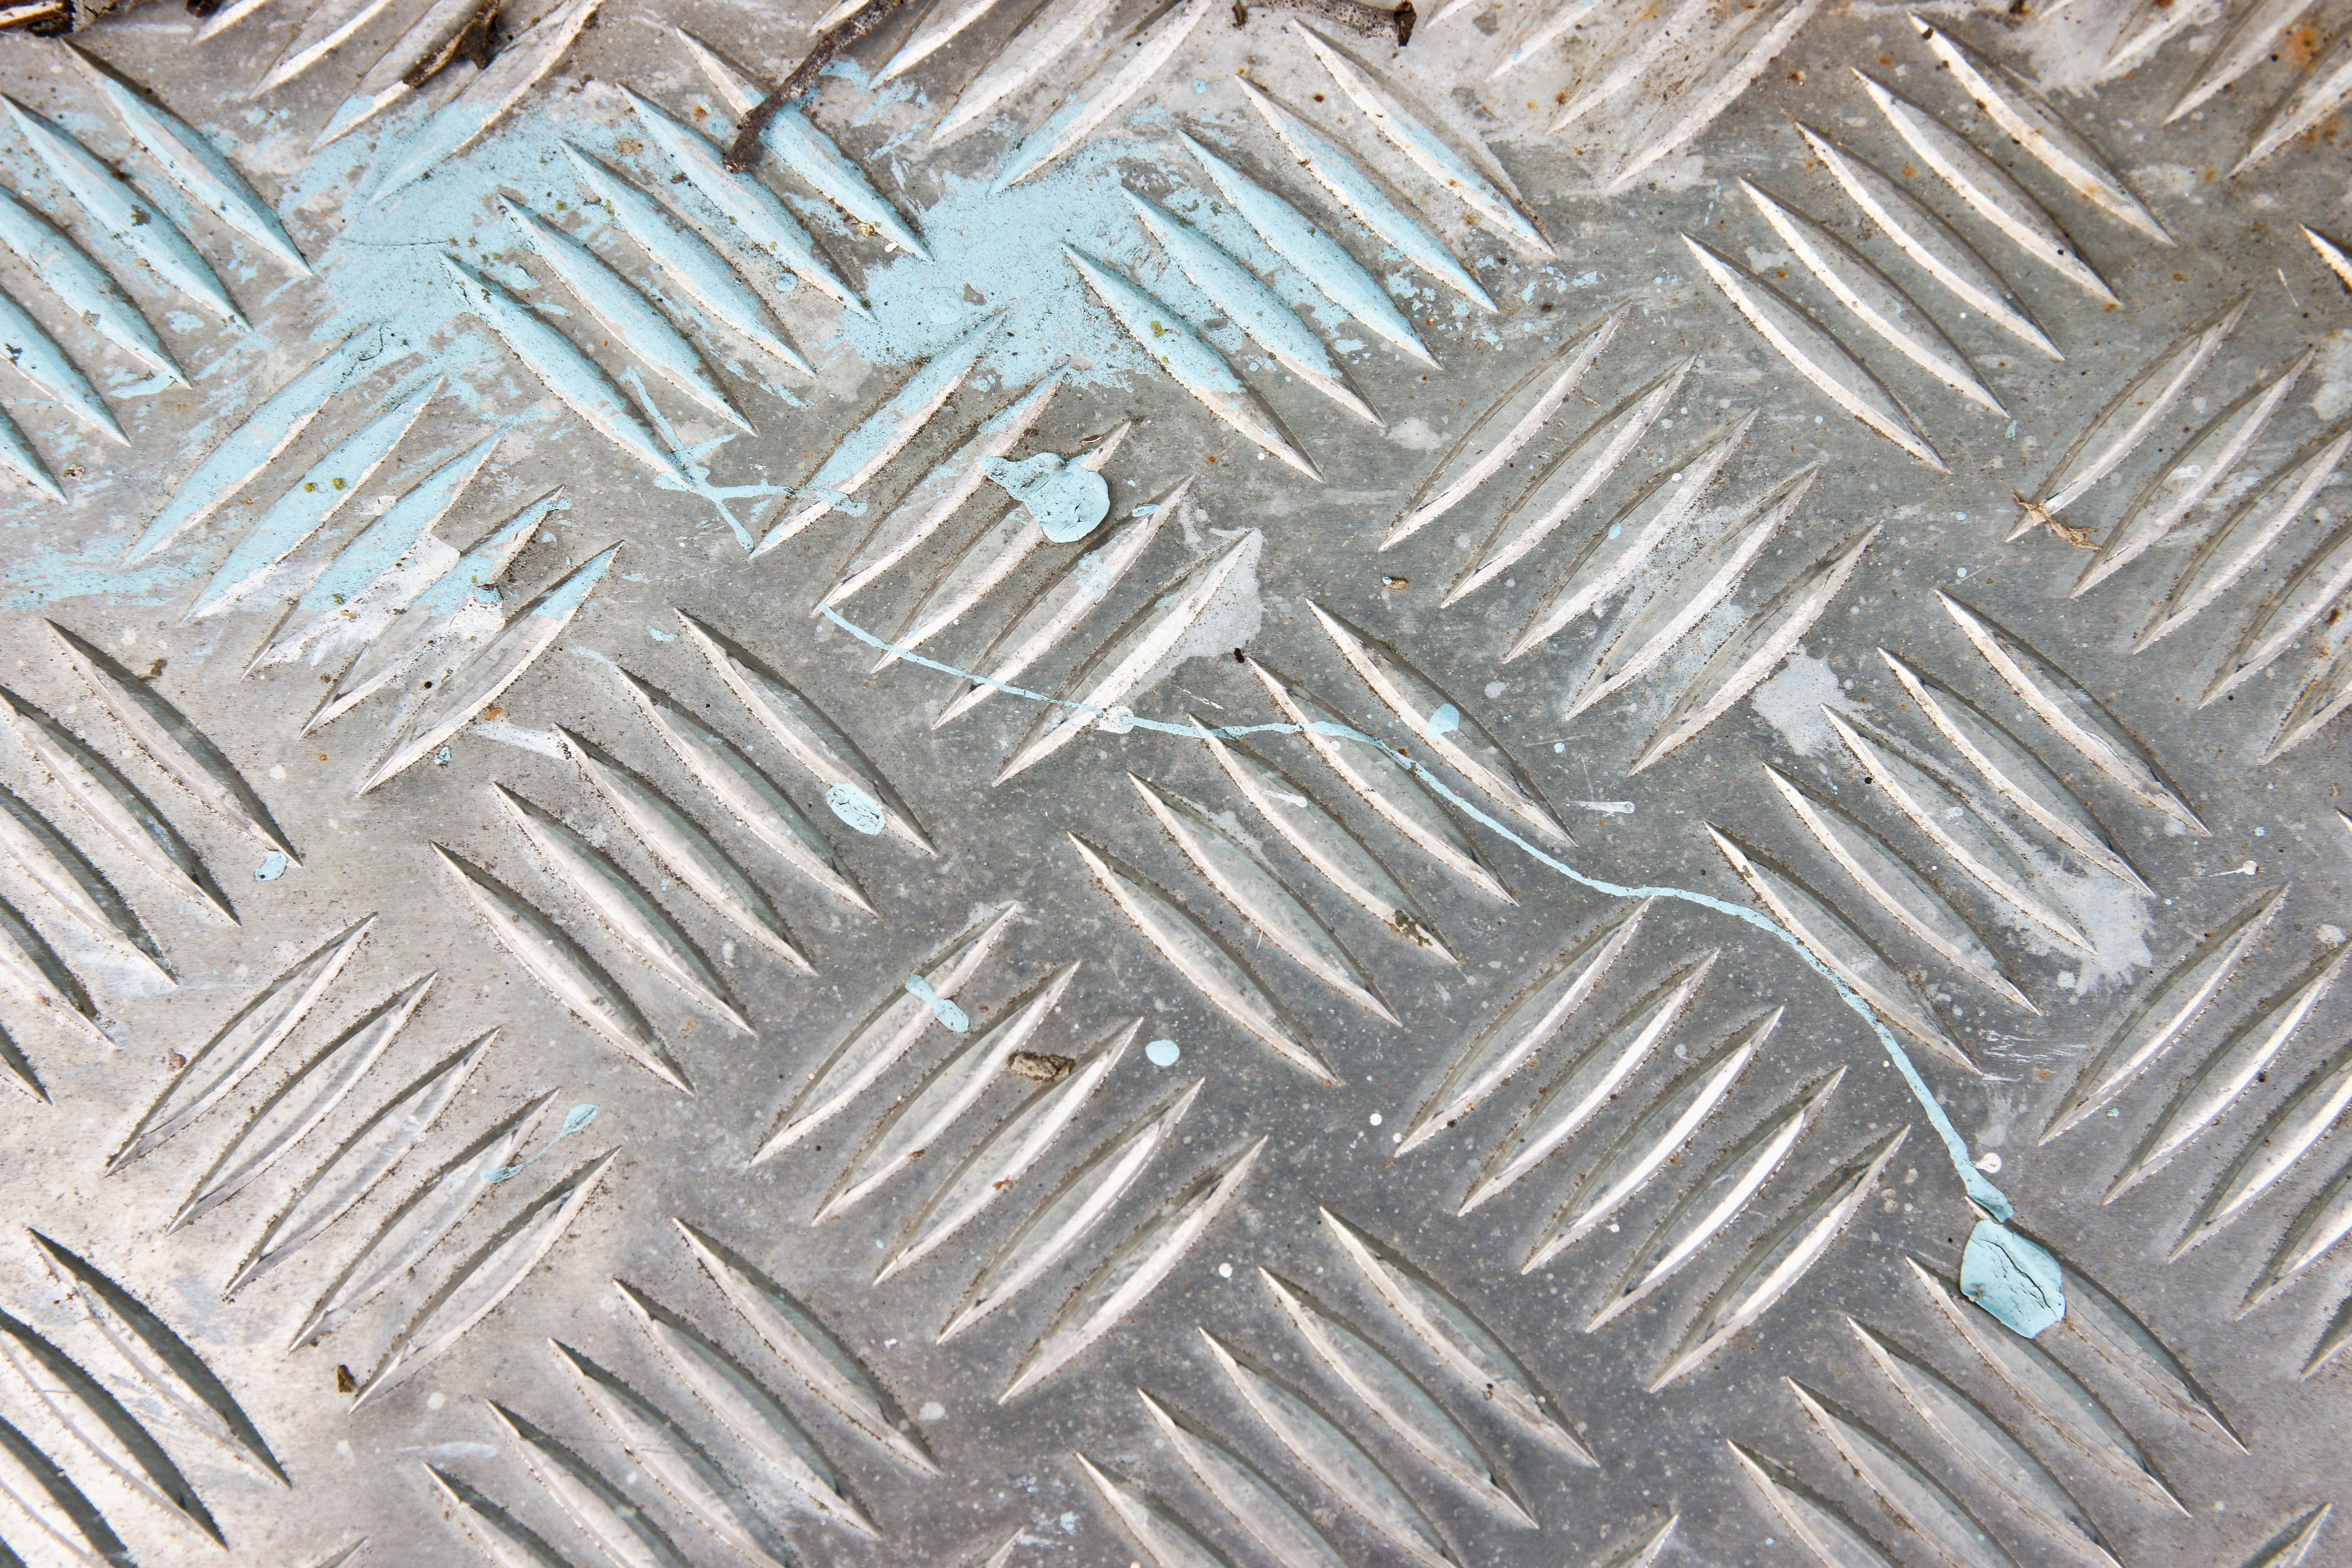 free textures photo of a diamond or tread plate metal background 9 6048x4032